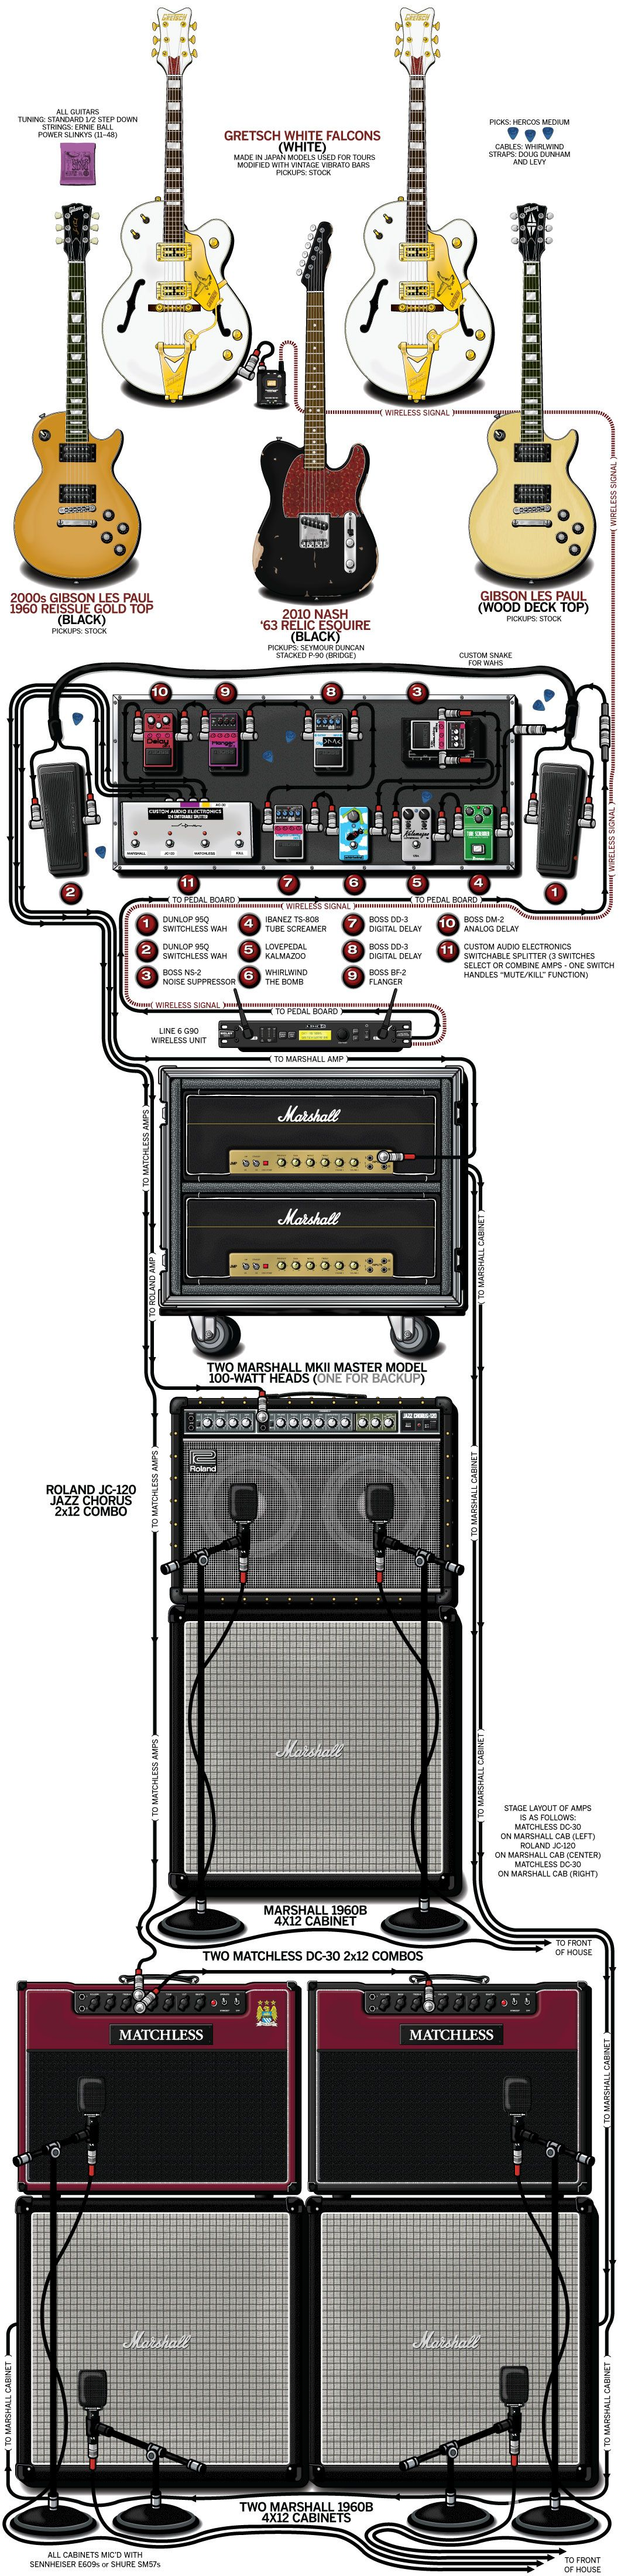 Billy Duffy's 2012 guitar rig :: #Gretsch White Falcon #Gibson Les Paul